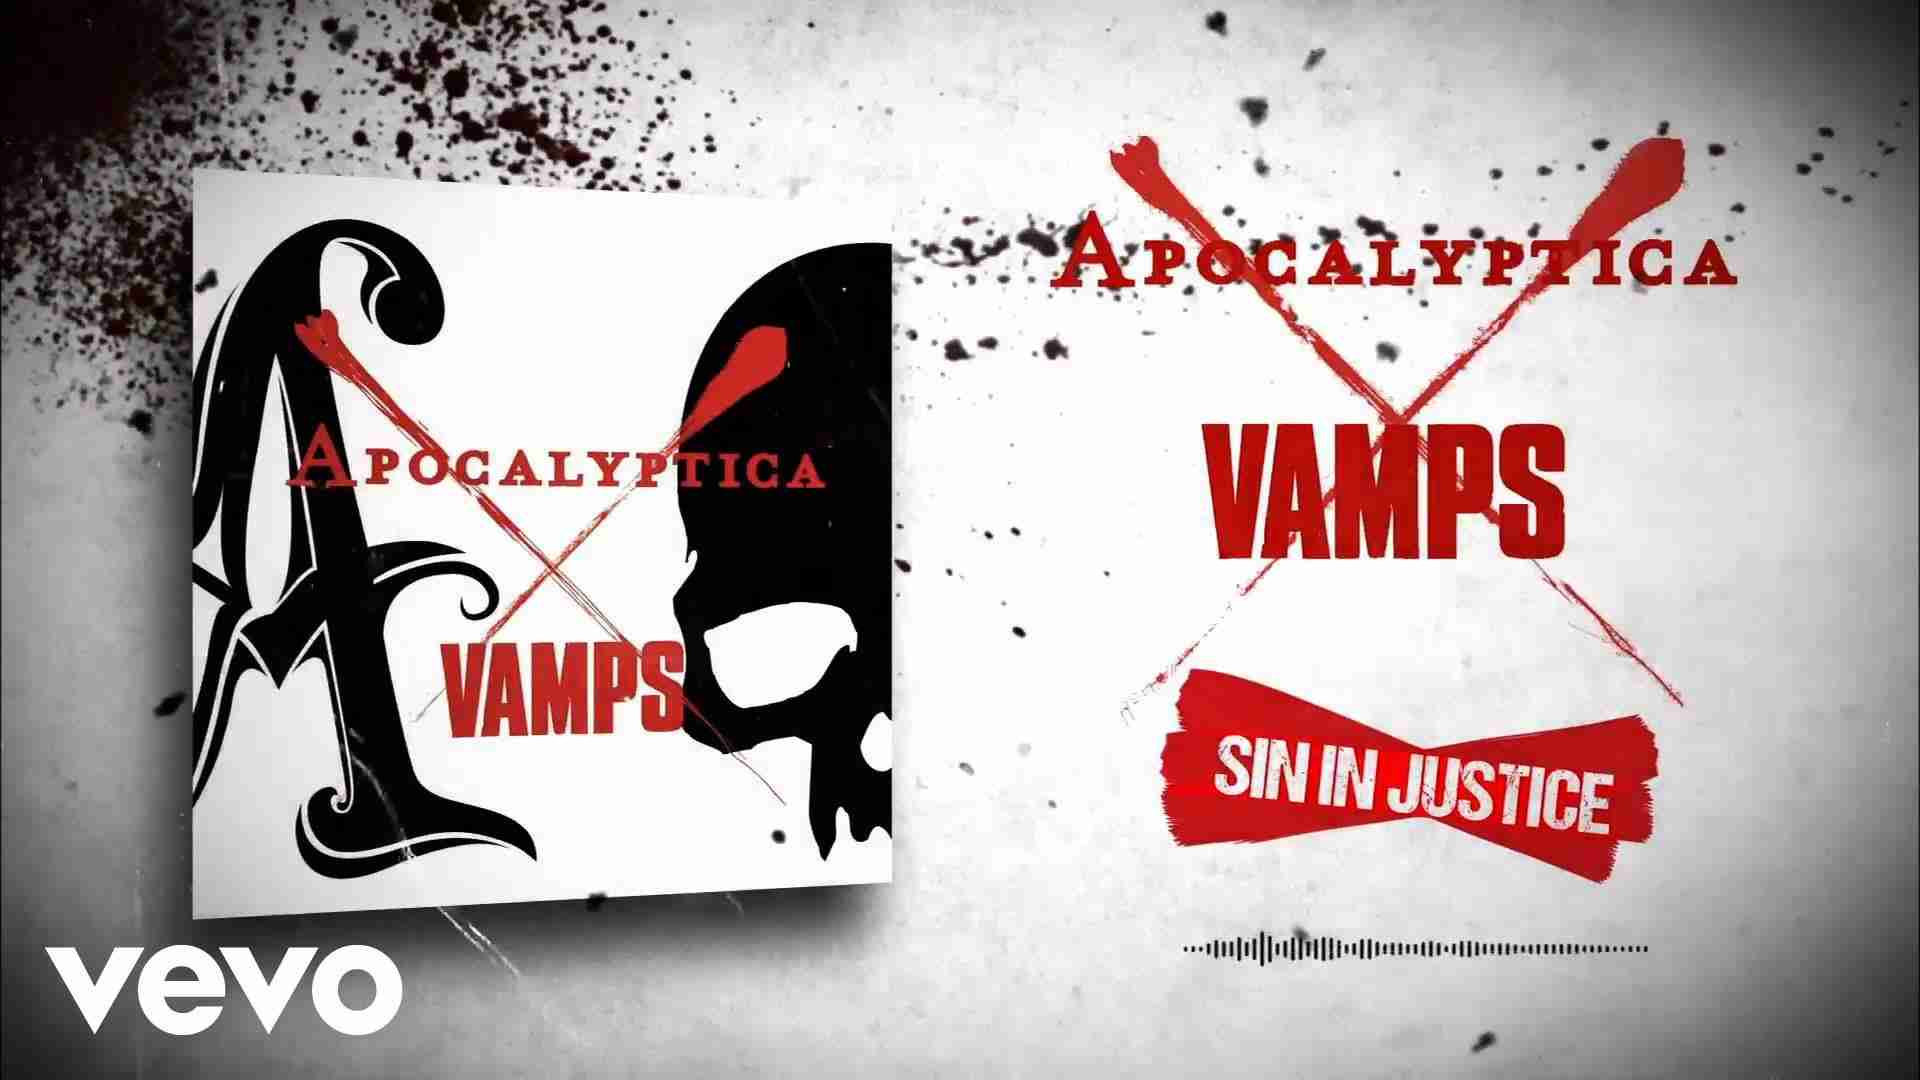 APOCALYPTICA X VAMPS - SIN IN JUSTICE (LYRIC VIDEO) - YouTube